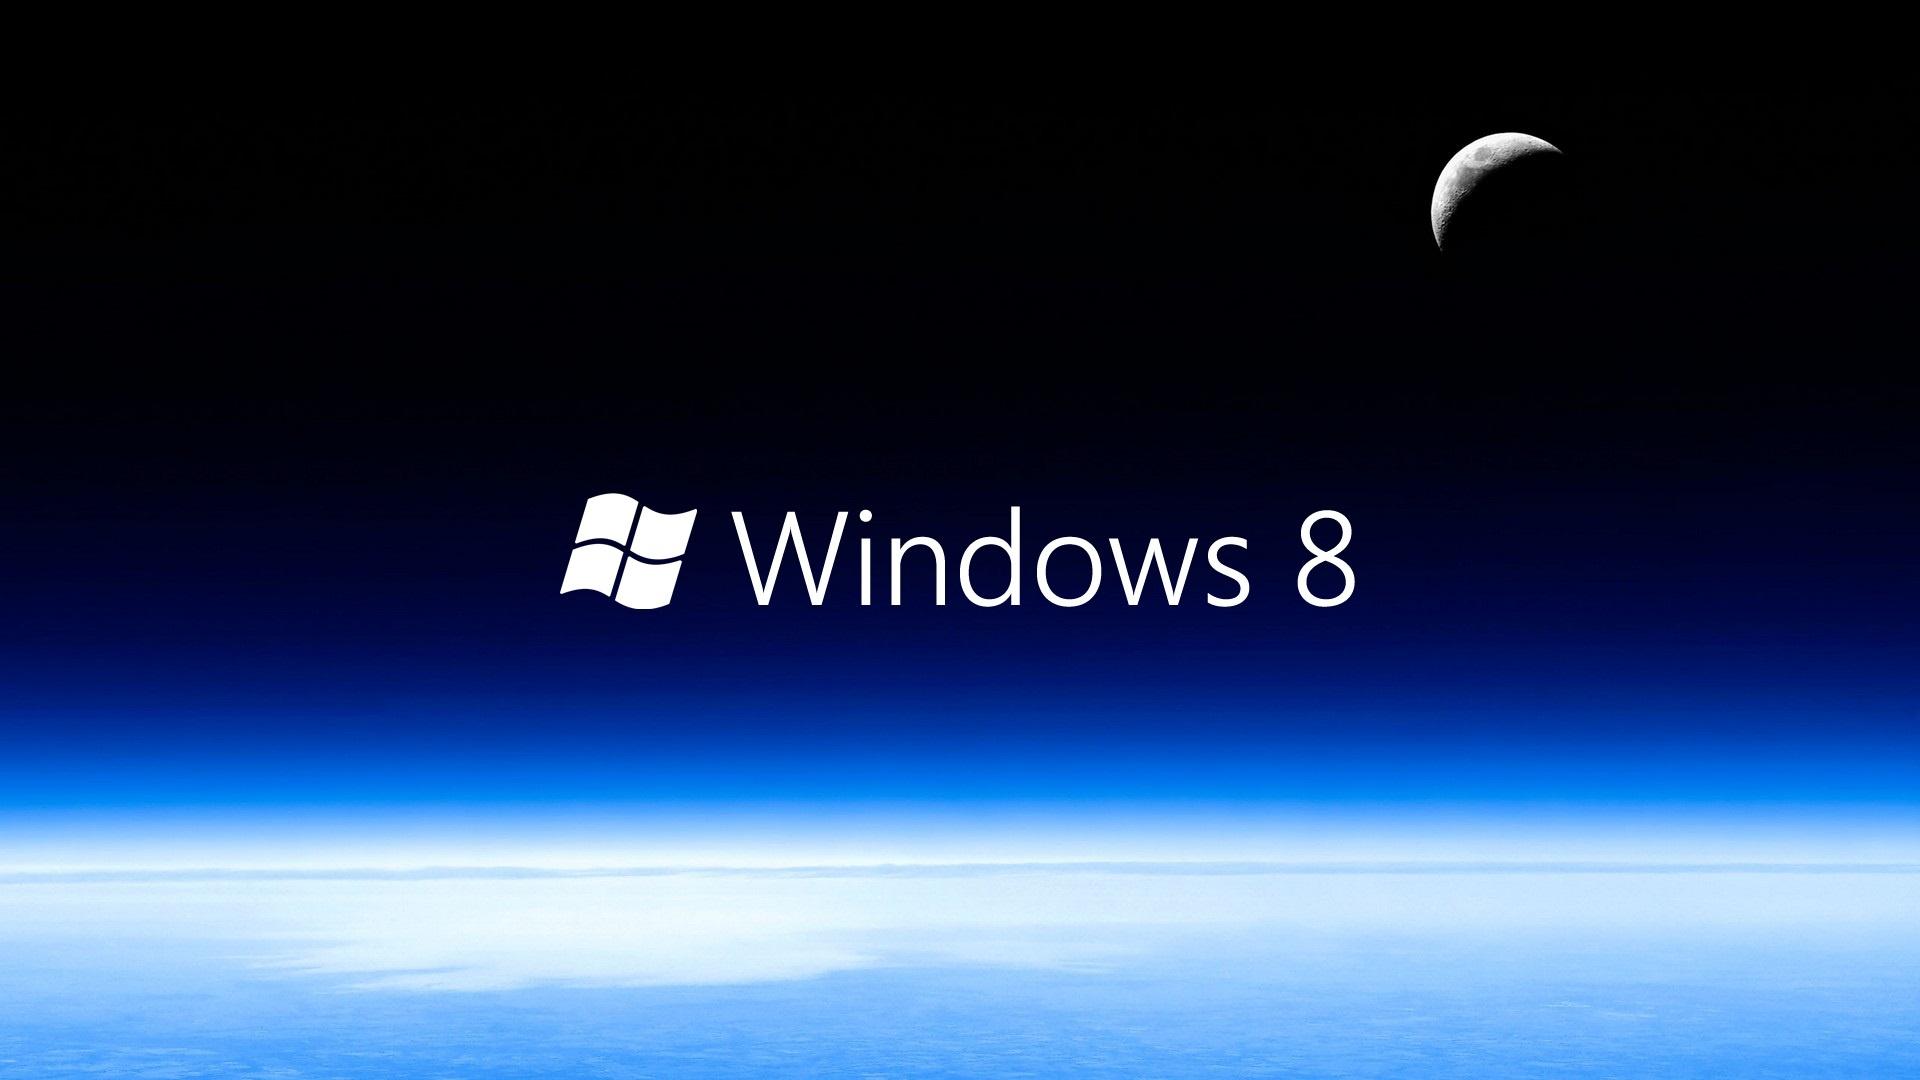 Windows Backgrounds Pictures Images